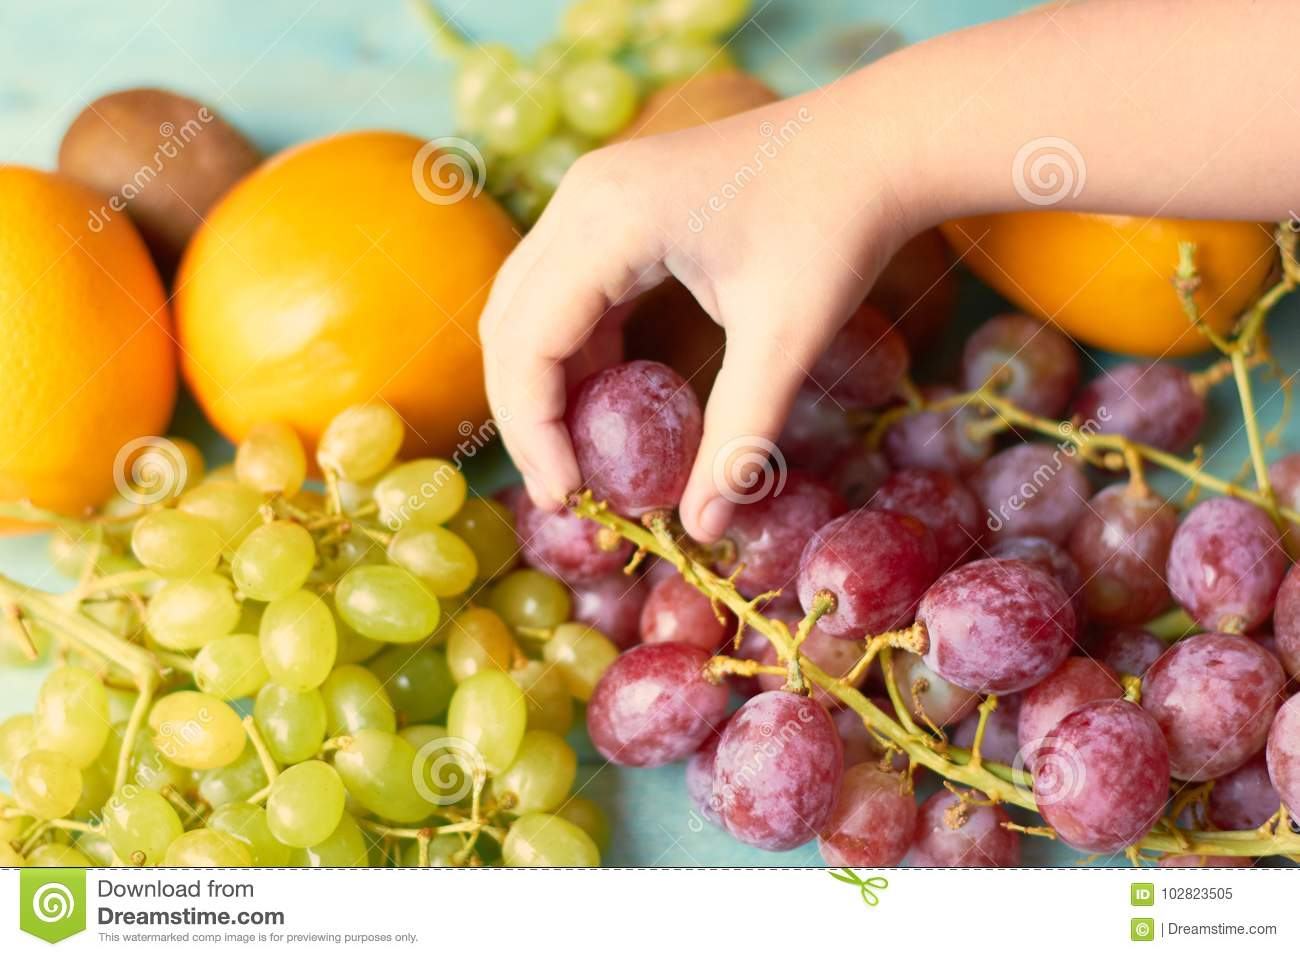 A child takes fruit from a plate